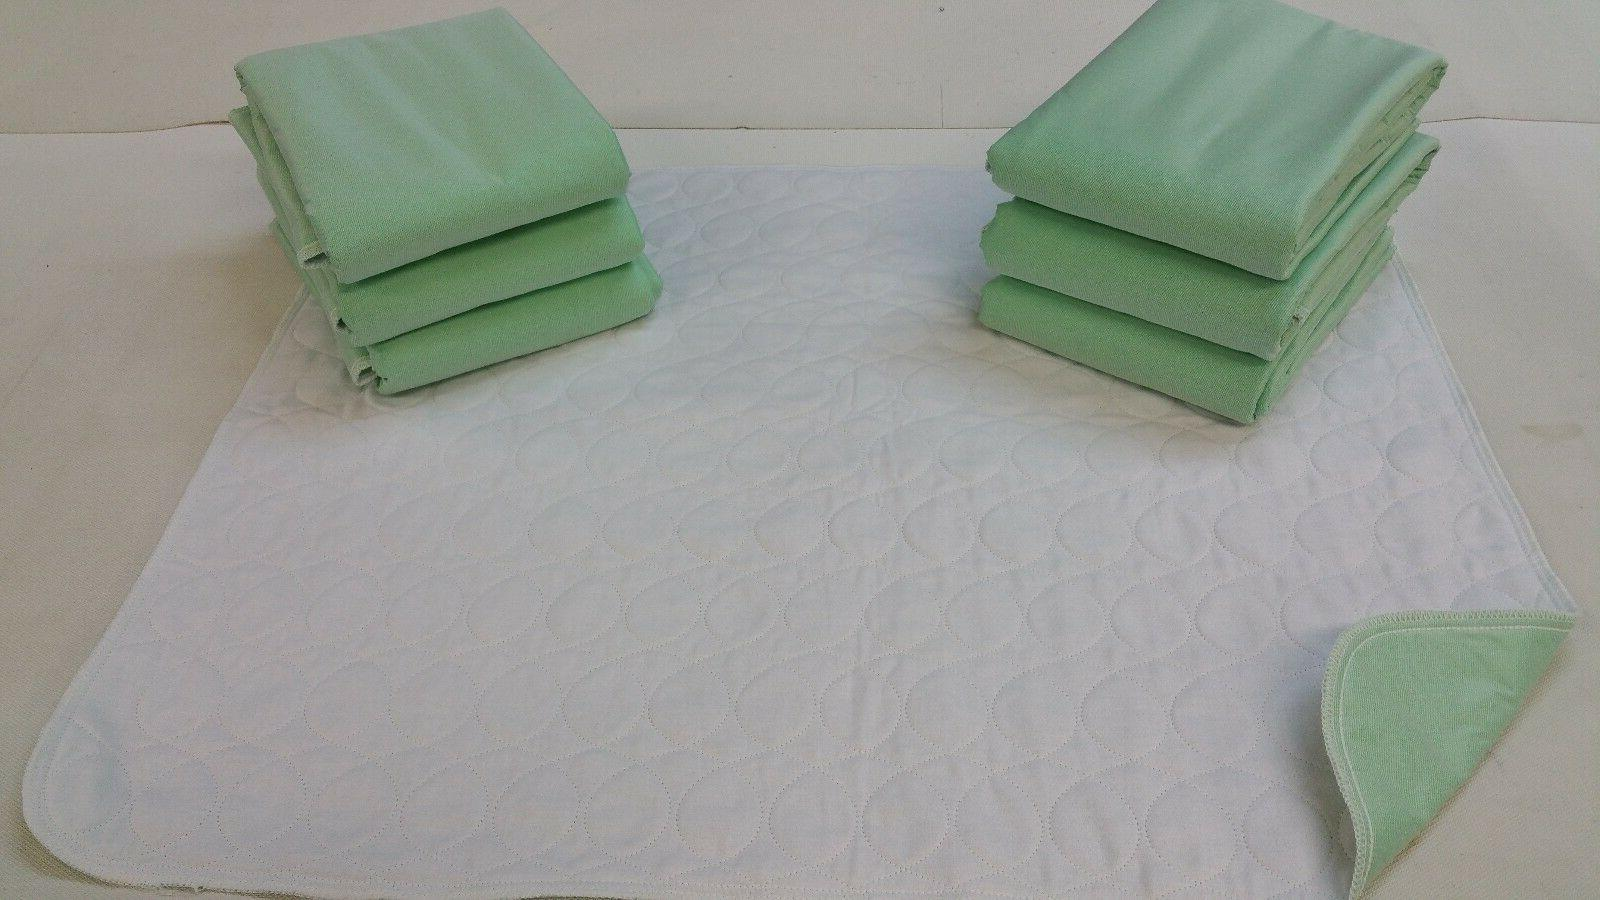 6 new bed pads 34x36 washable reusable